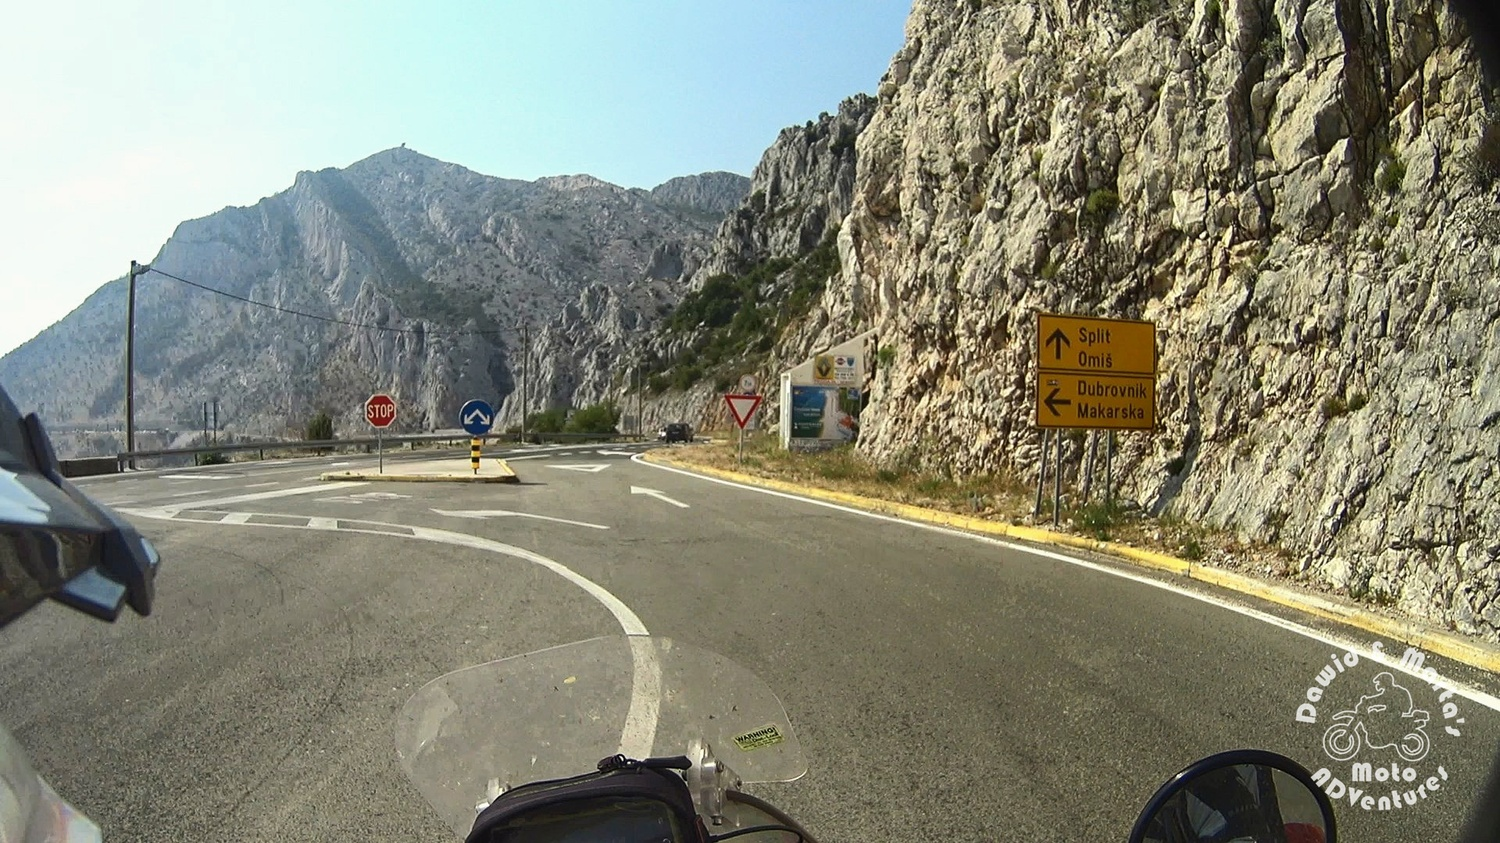 Riding down the Cesta Domovinskog Rata in Croatia Nature Park Bikovo to Adriatic Highway